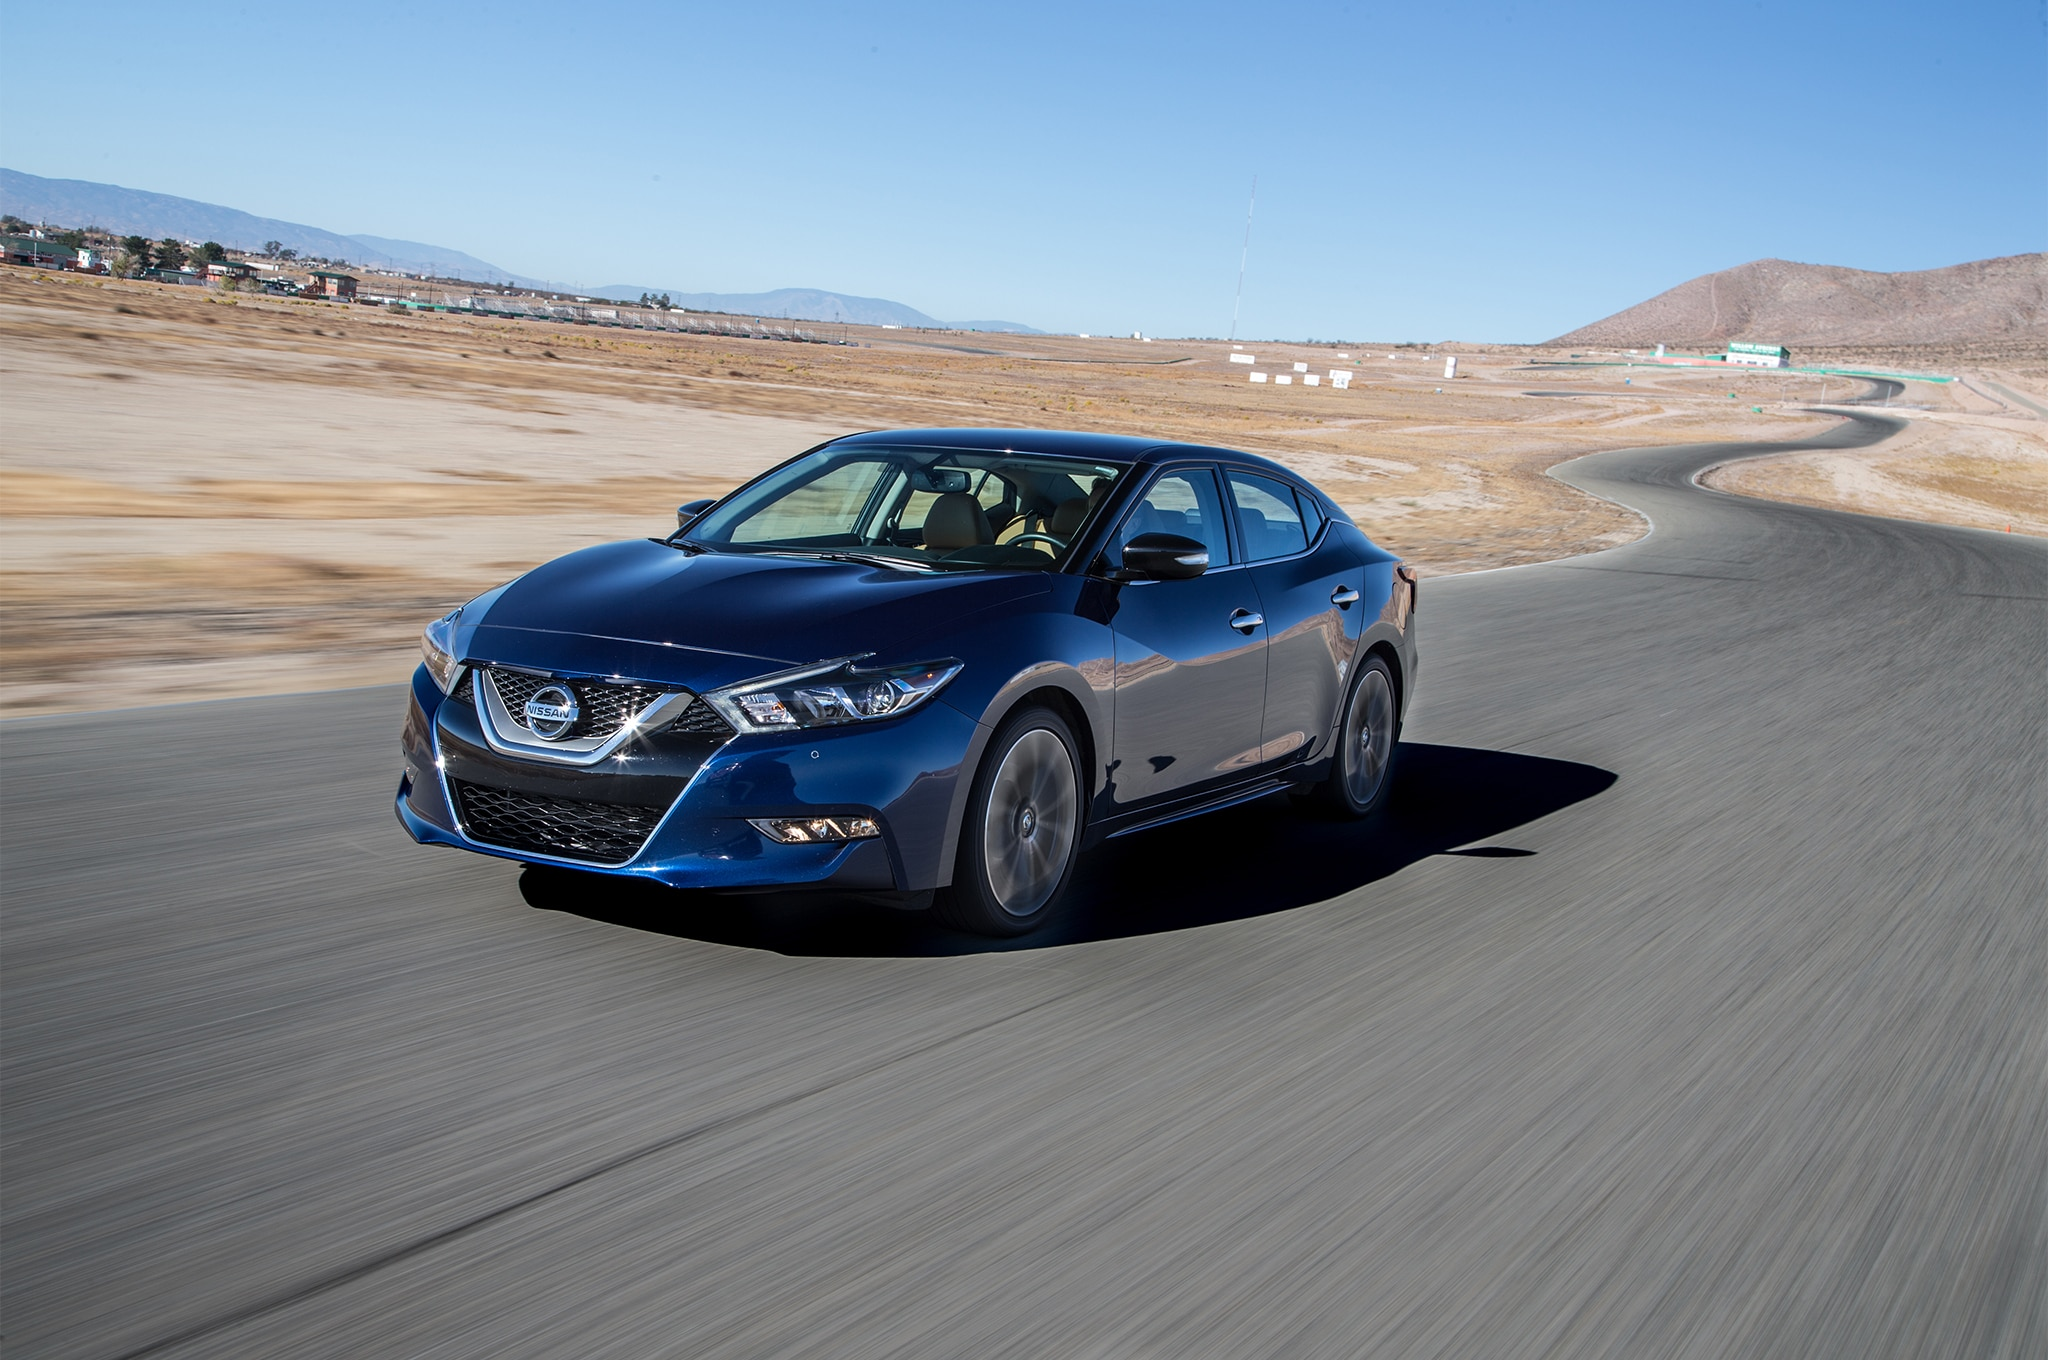 2016 Nissan Maxima SR Front Three Quarter In Motion 01